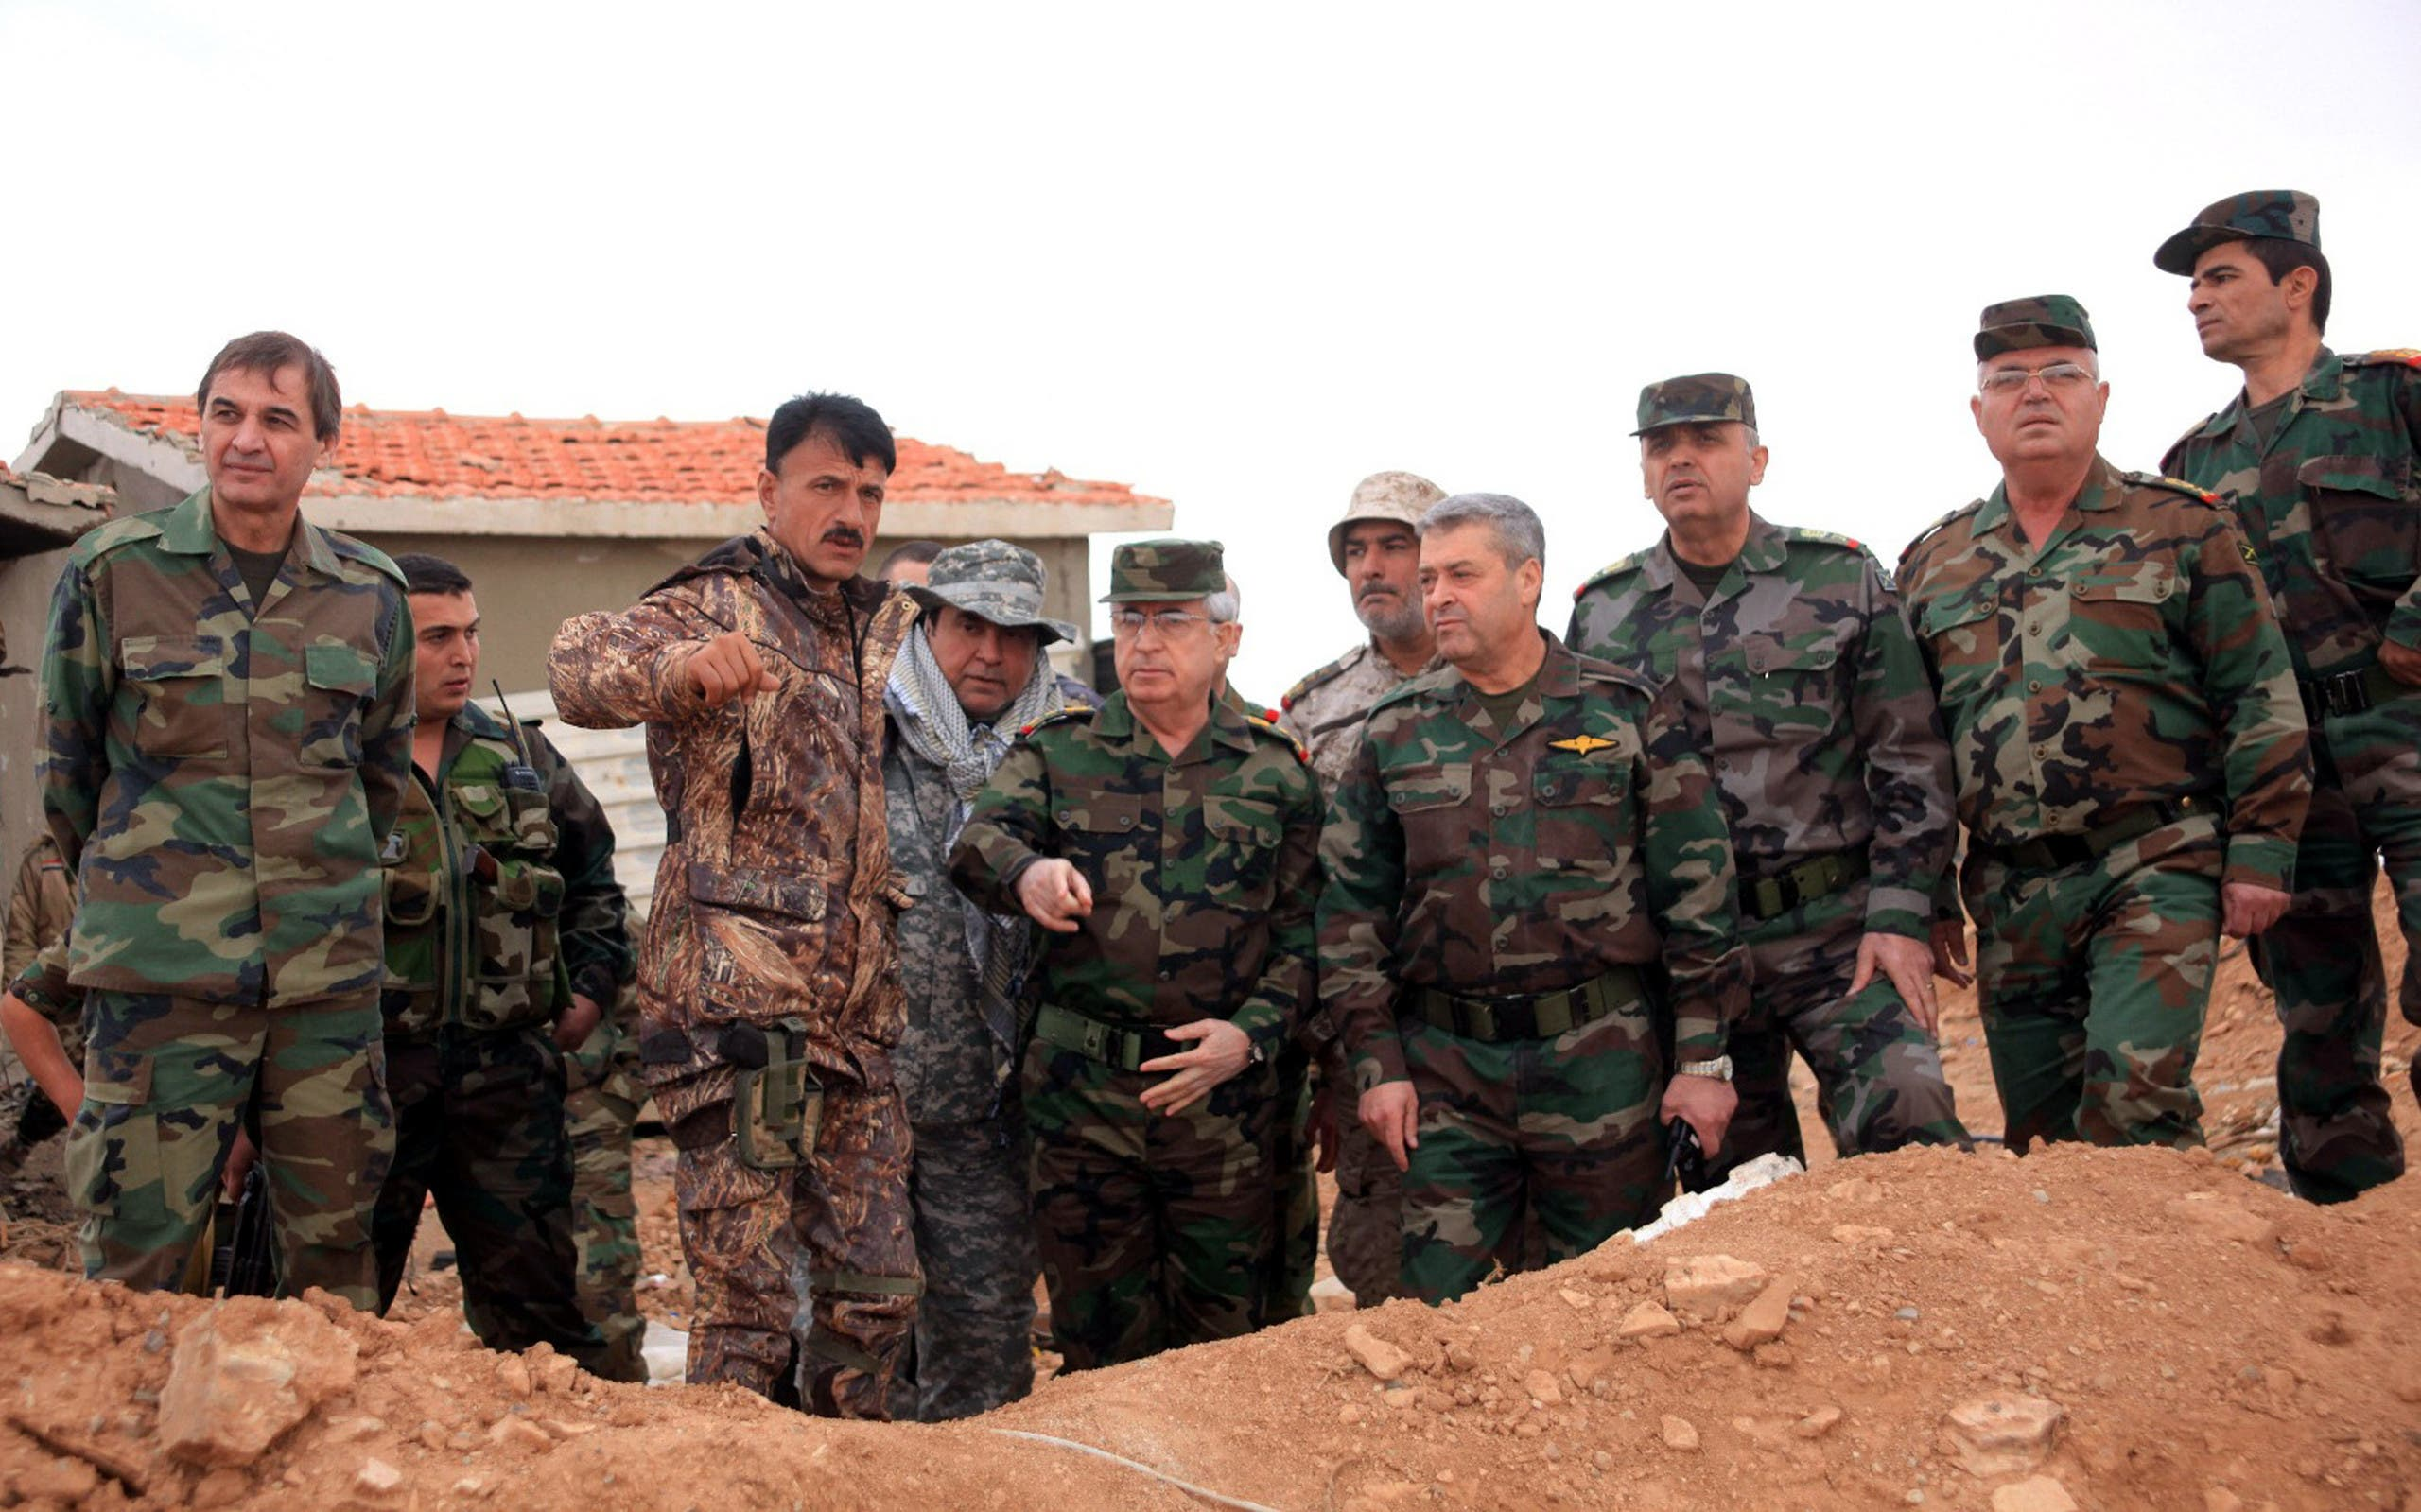 A handout picture released by the Syiran Arab News Agency (SANA) shows Chief of the General Staff of the Syrian Army Ali Abdullah Ayyoub (C), accompanied by a number of senior army officers during fighting in 2014. (AFP, SANA)